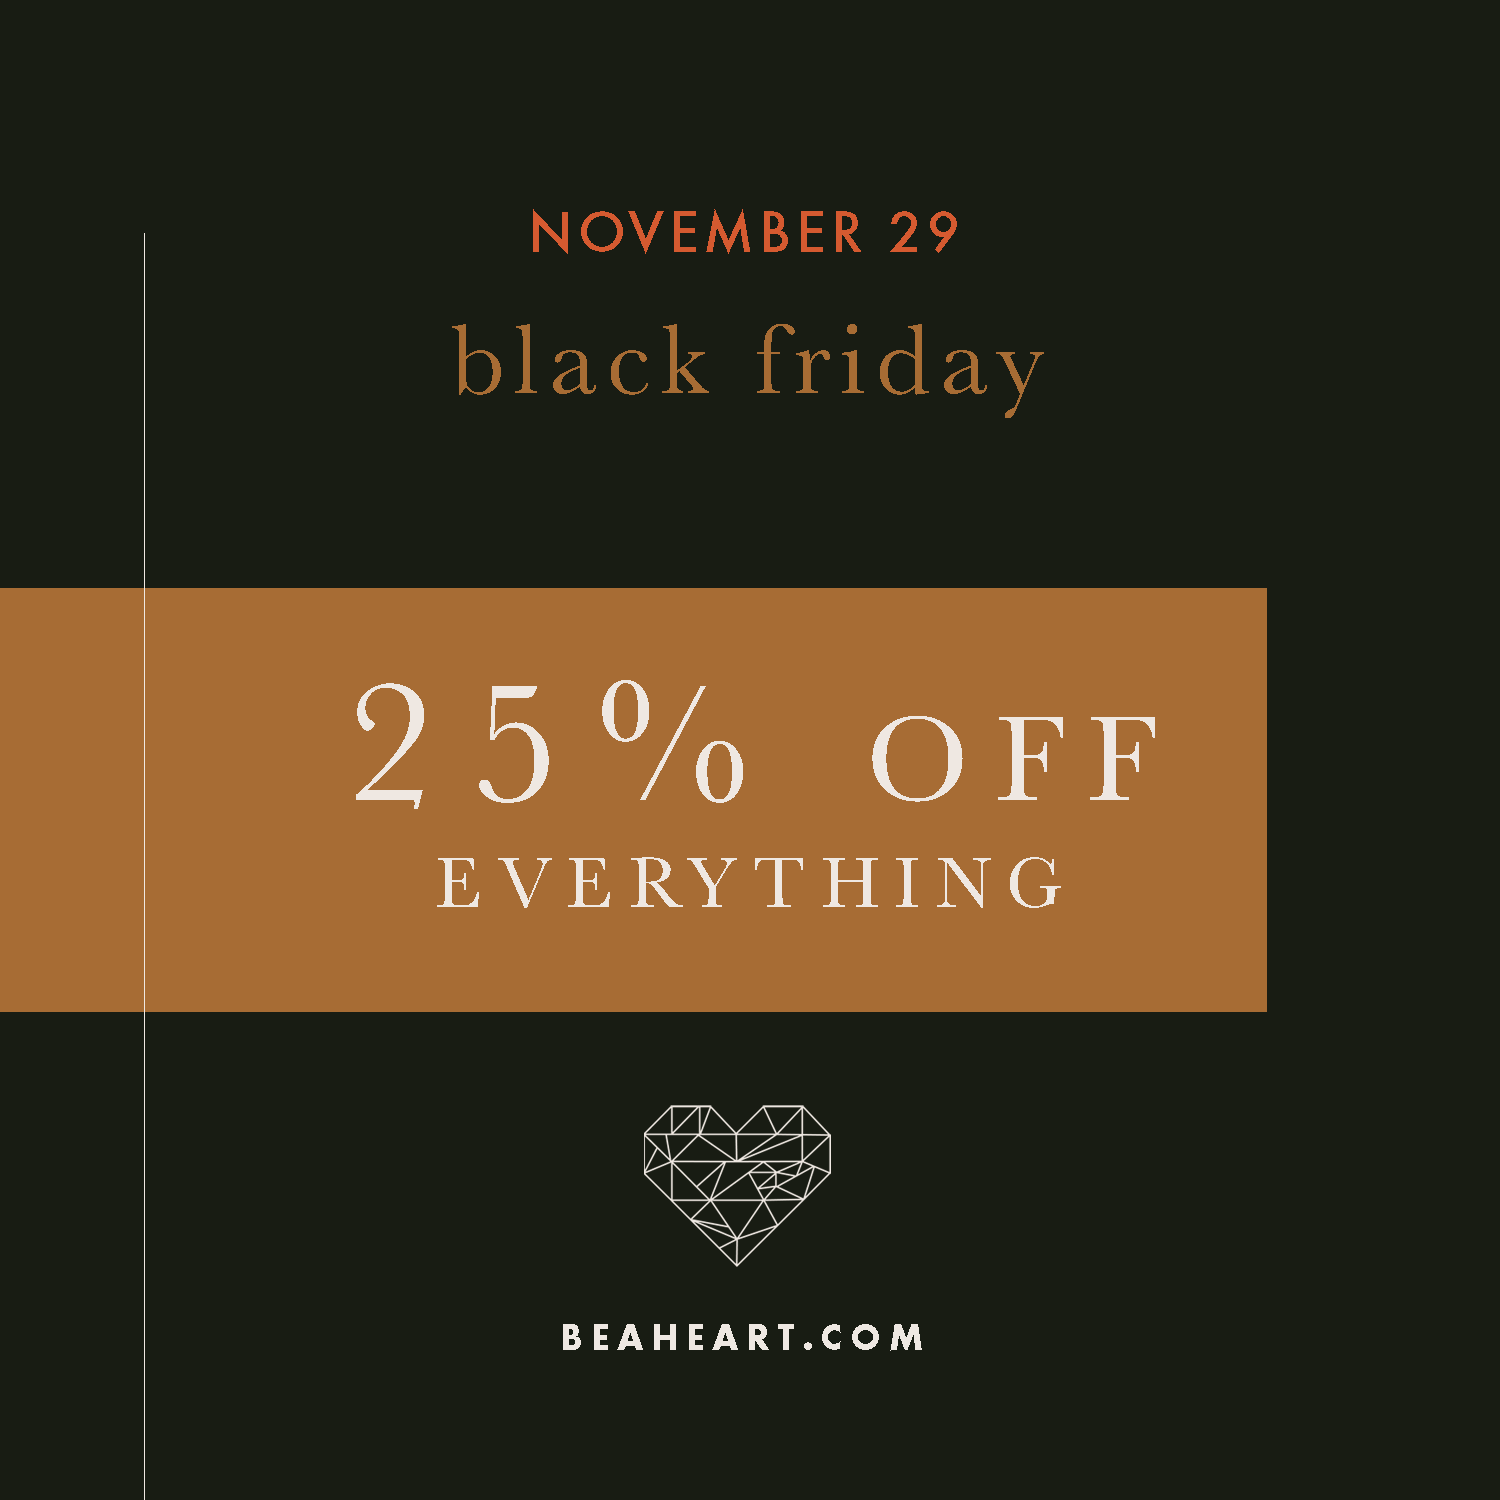 be a heart black friday